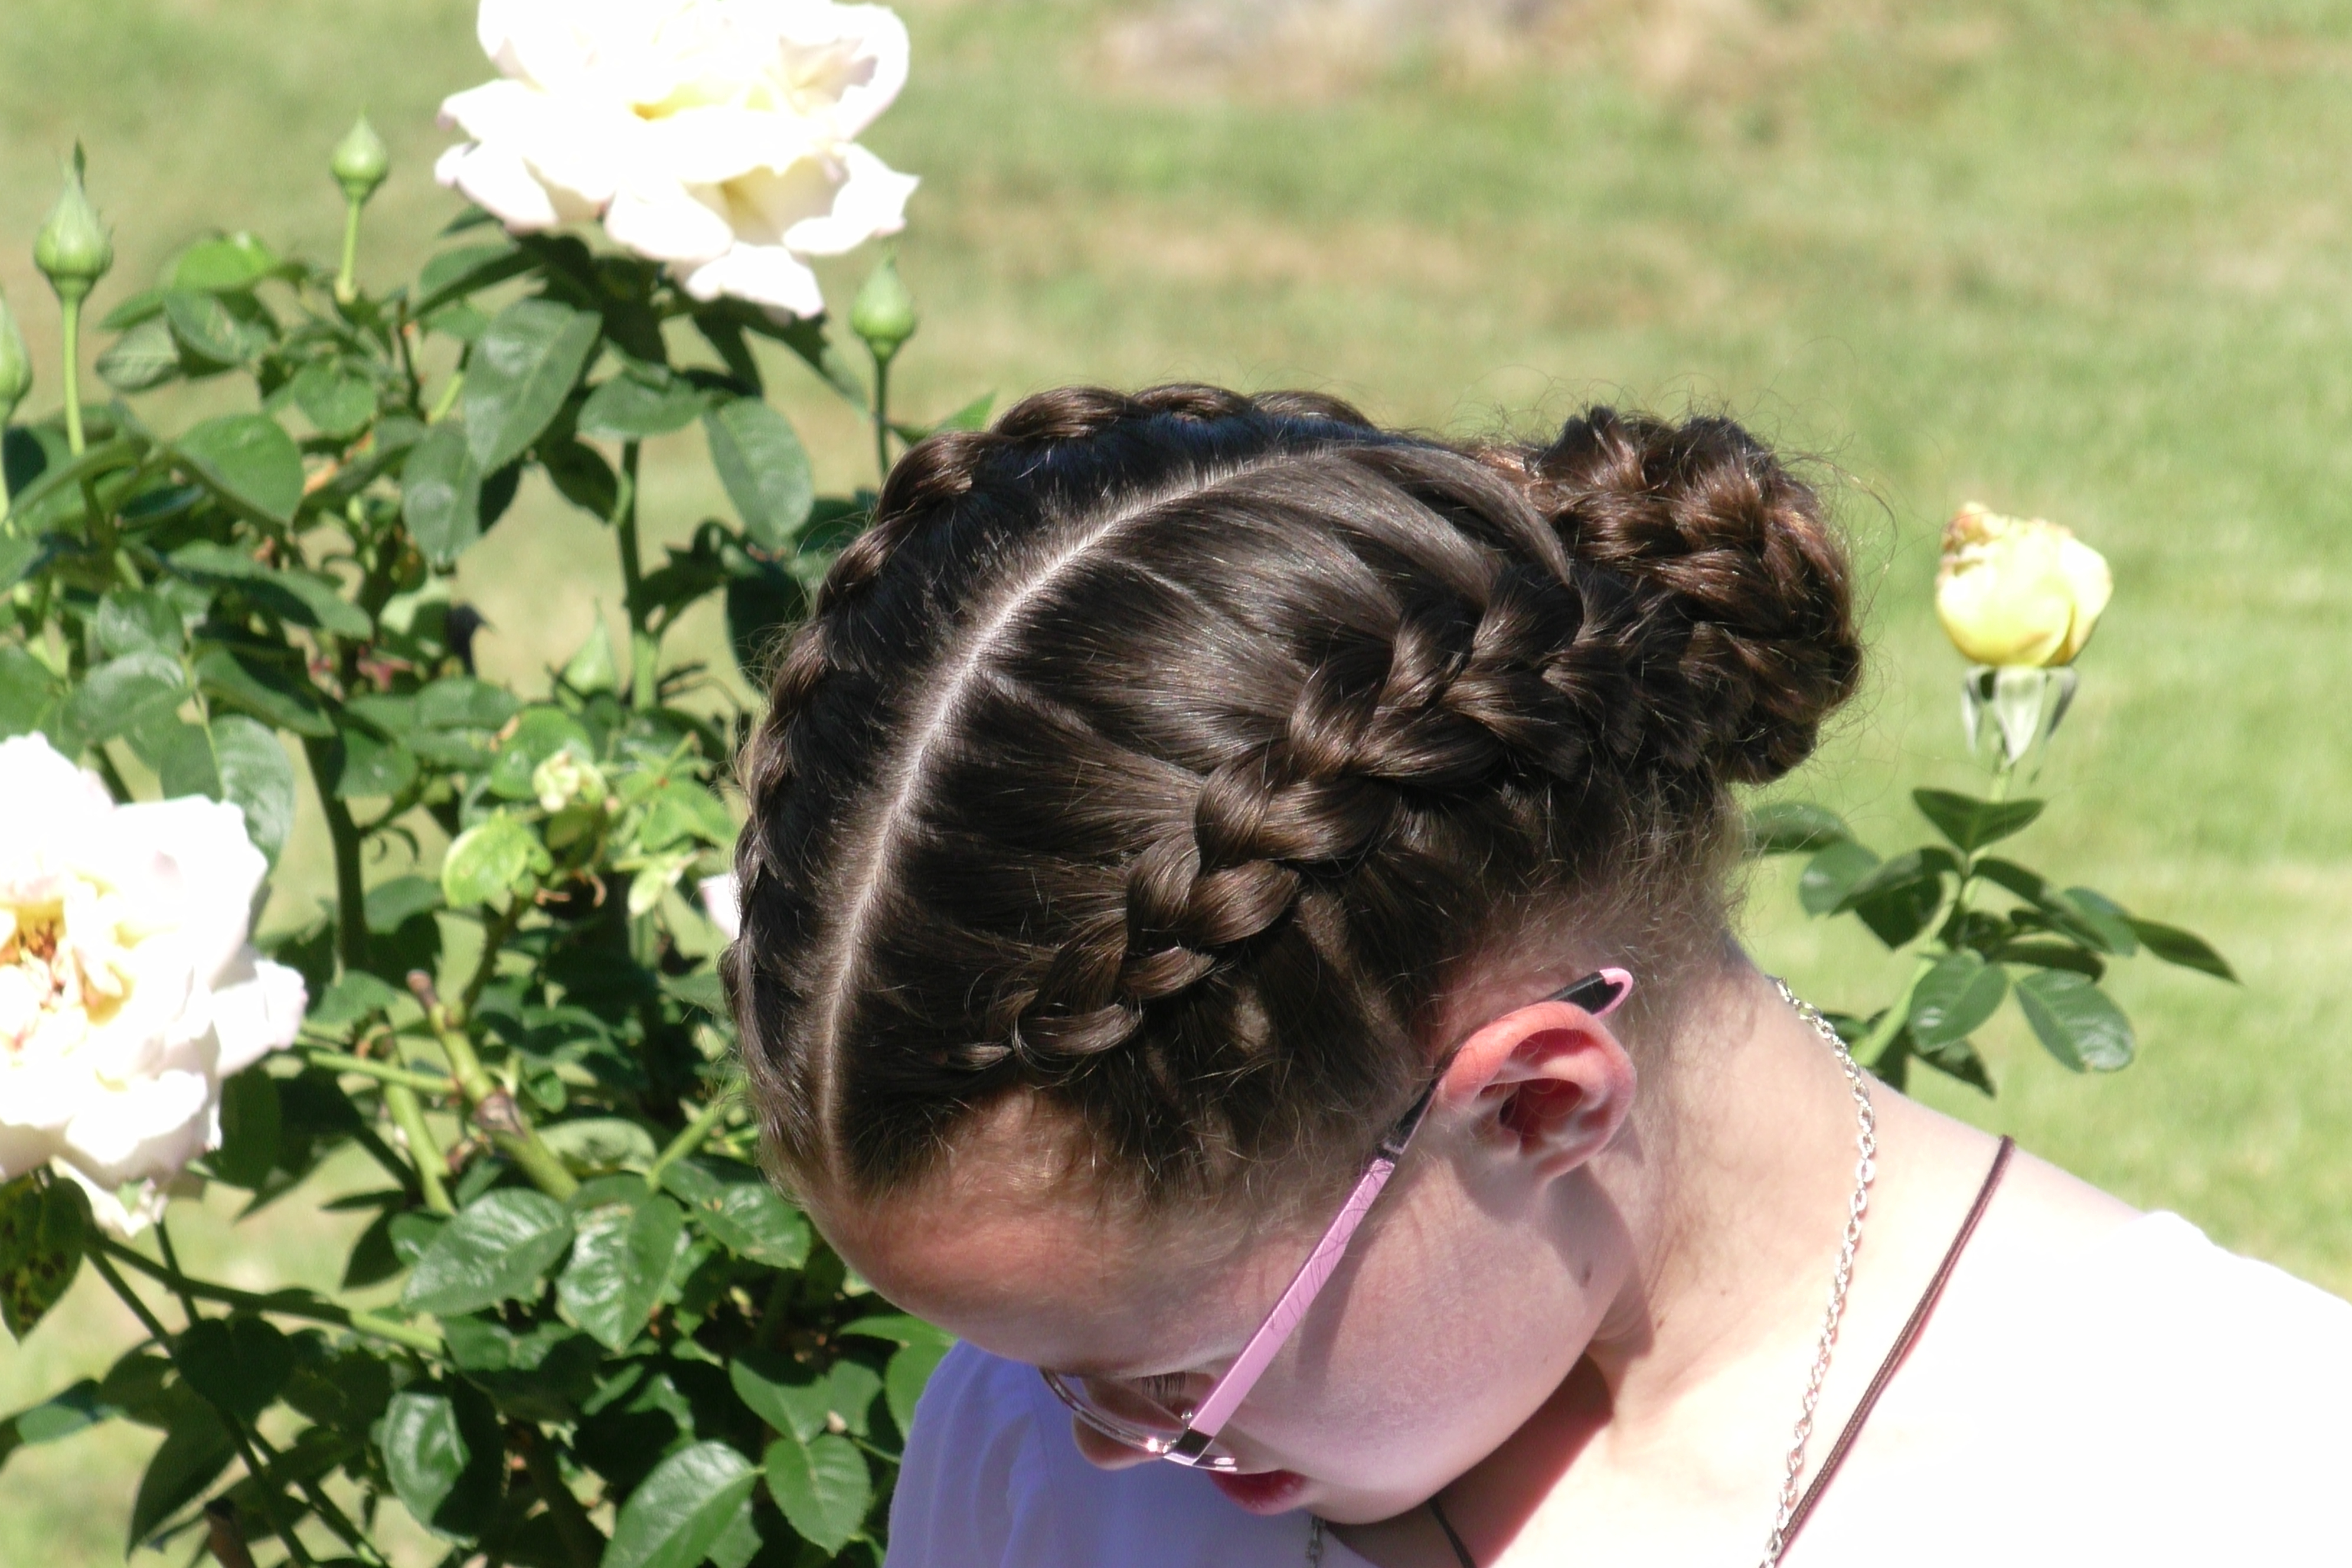 Well Known Double Crown Updo Braided Hairstyles For Double Dutch Braided Updo – Seton Girls' Hairstyles (View 17 of 20)